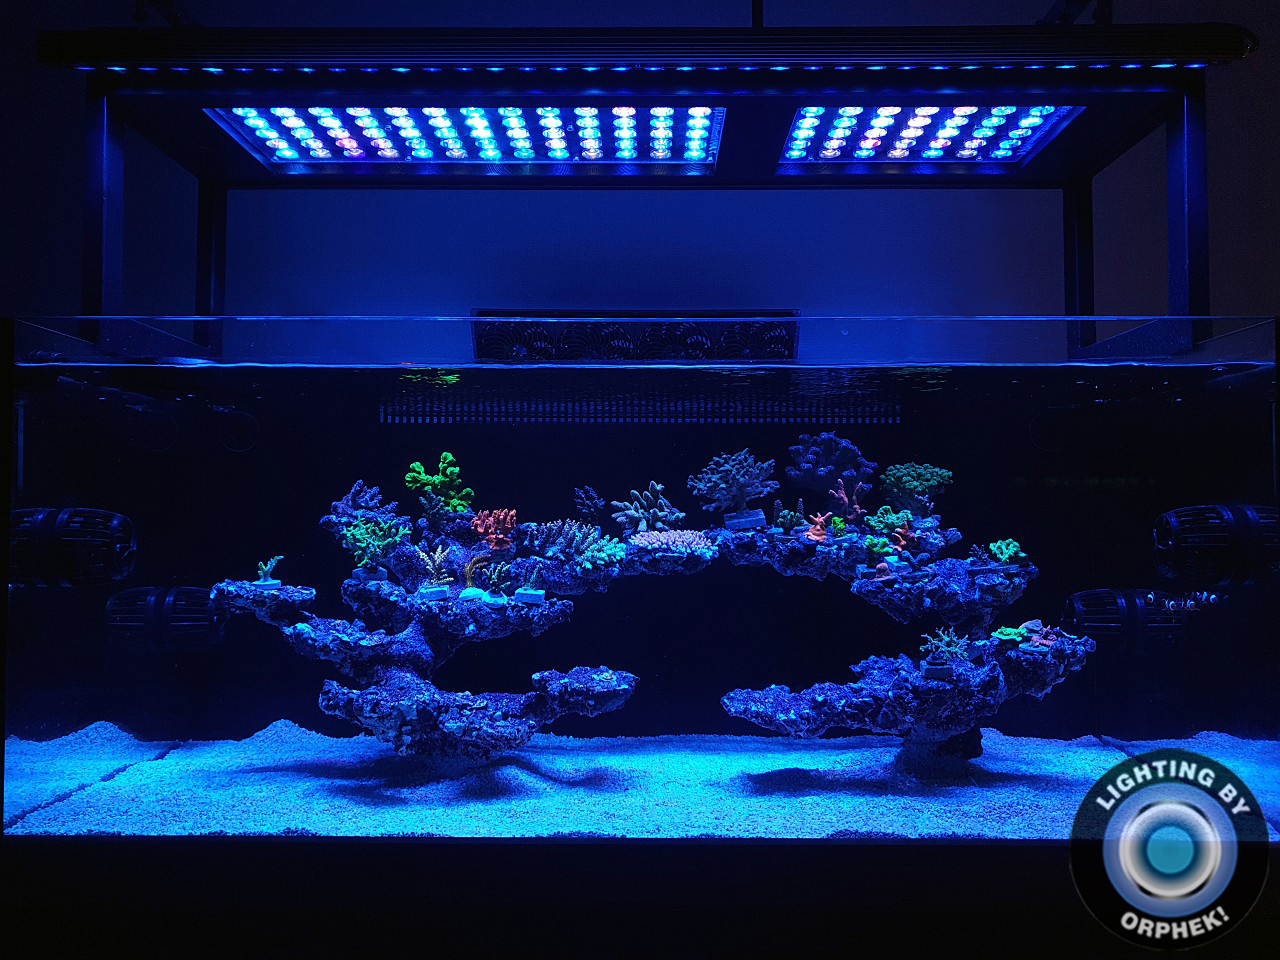 Orphek-reef-aquarium-LED-lighting